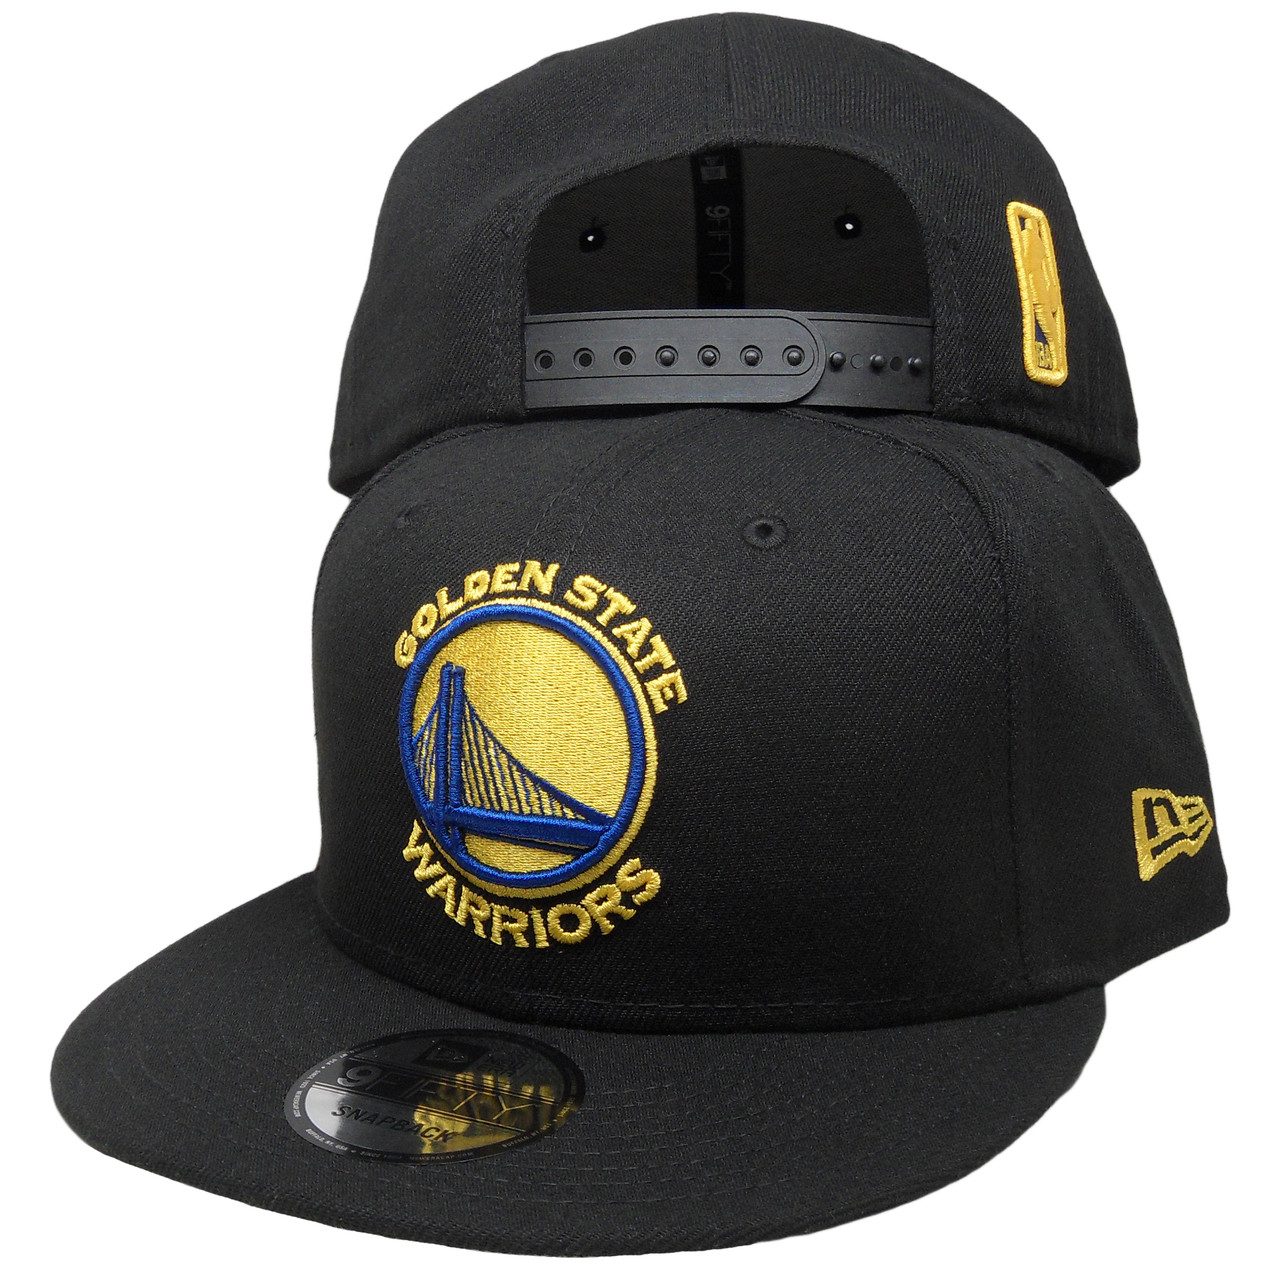 Golden State Warriors New Era Basic 9Fifty Snapback - Black 3e06be5d76a5